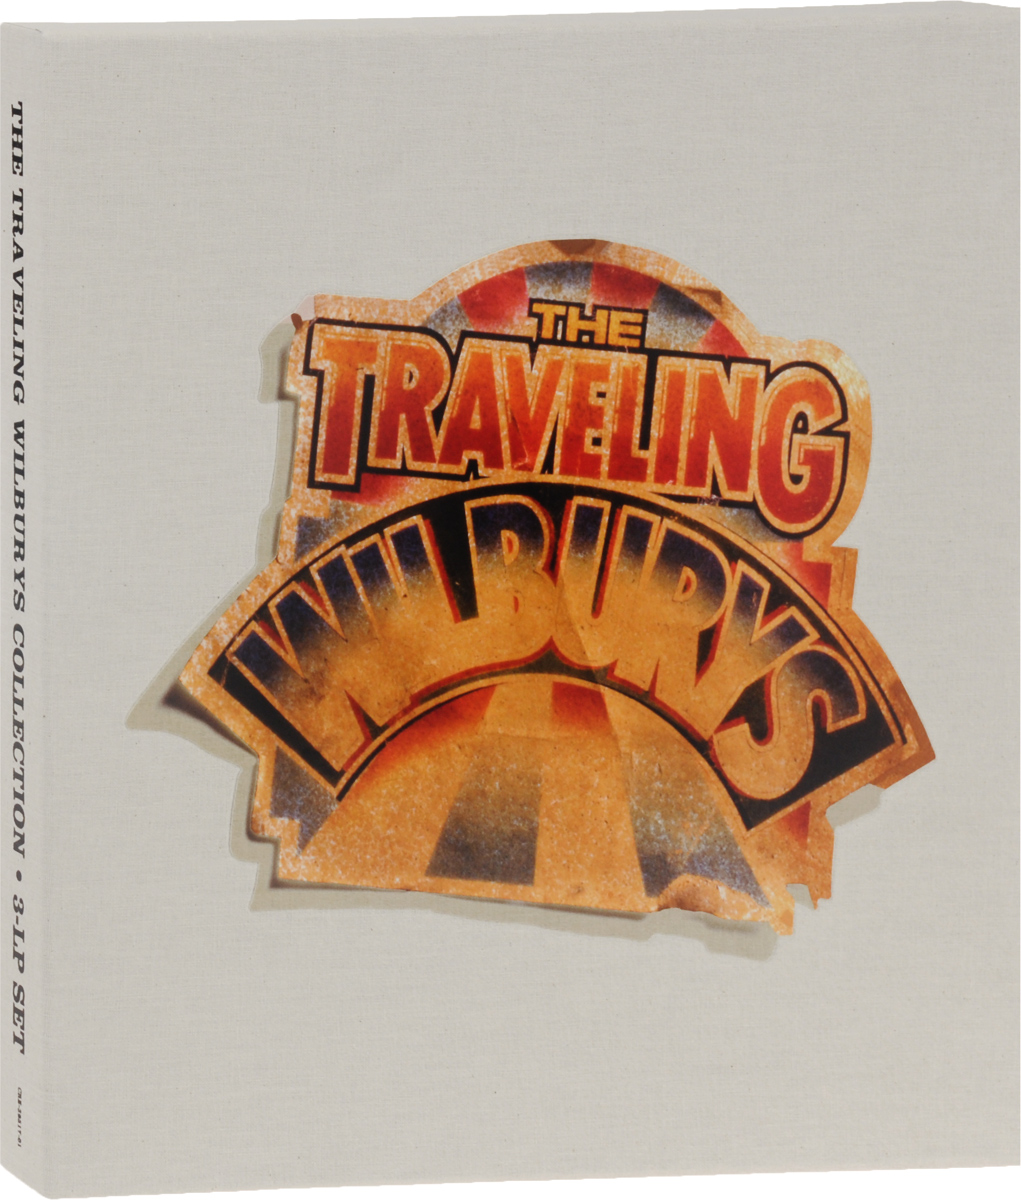 The Traveling Wilburys The Traveling Wilburys. The Traveling Wilburys Collection (3 LP) кран шаровый valtec vt 227 n 07